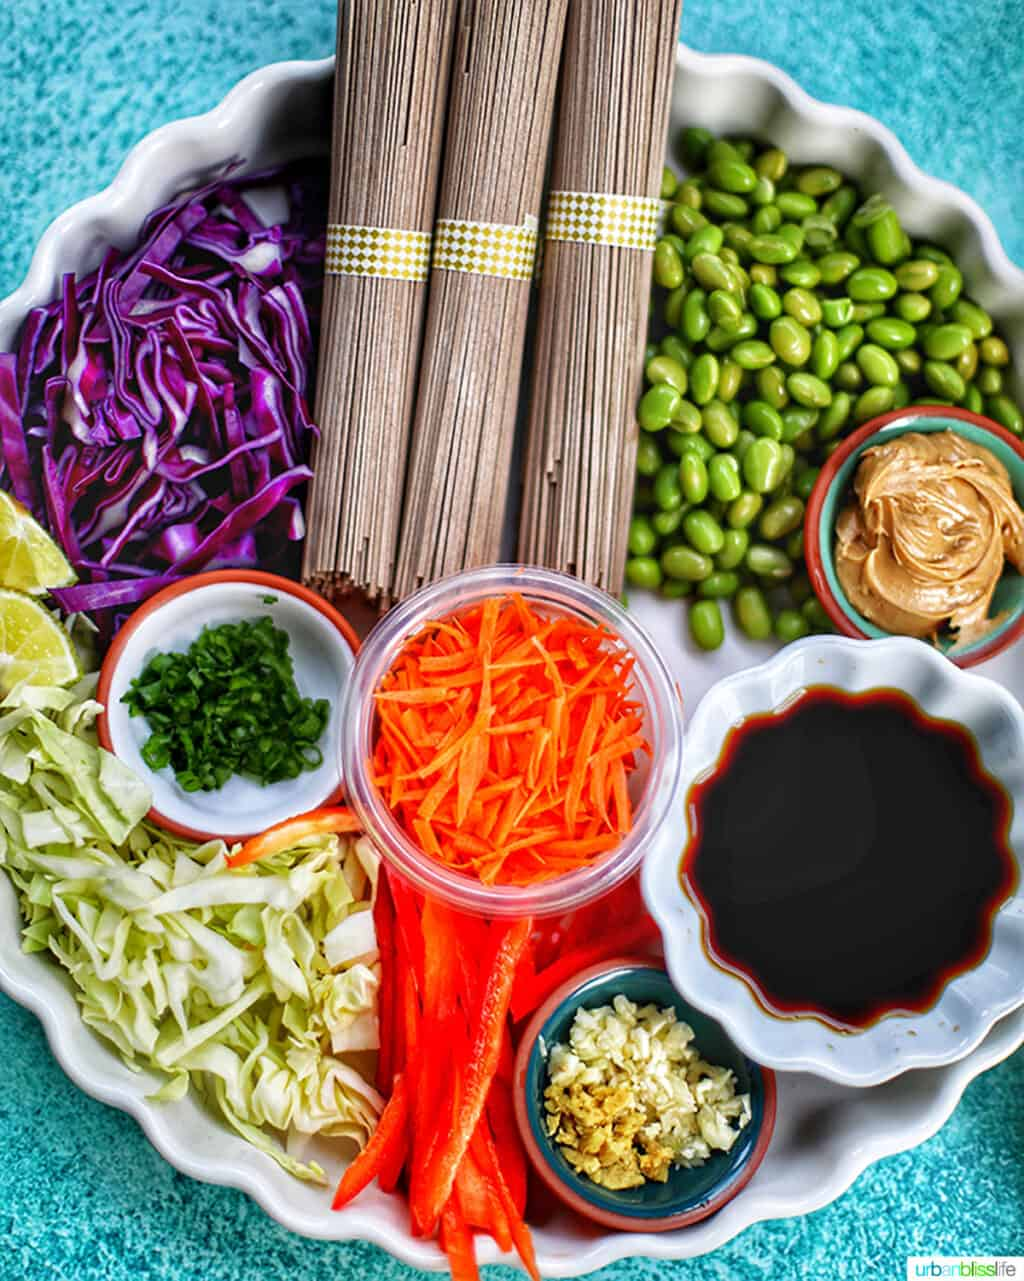 tray of ingredients for soba noodles